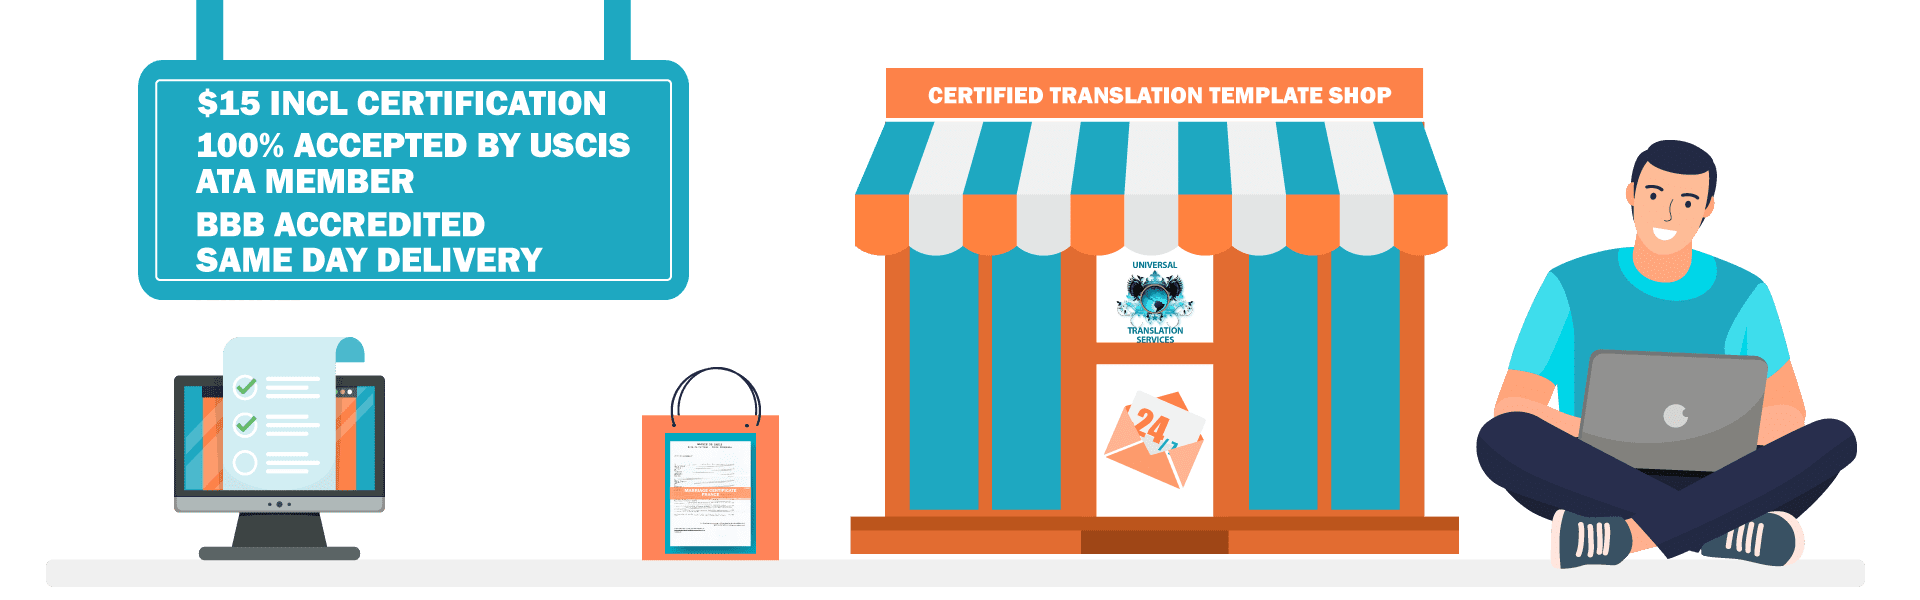 CERTIFICATE SHOP CERTIFIED TRANSLATION